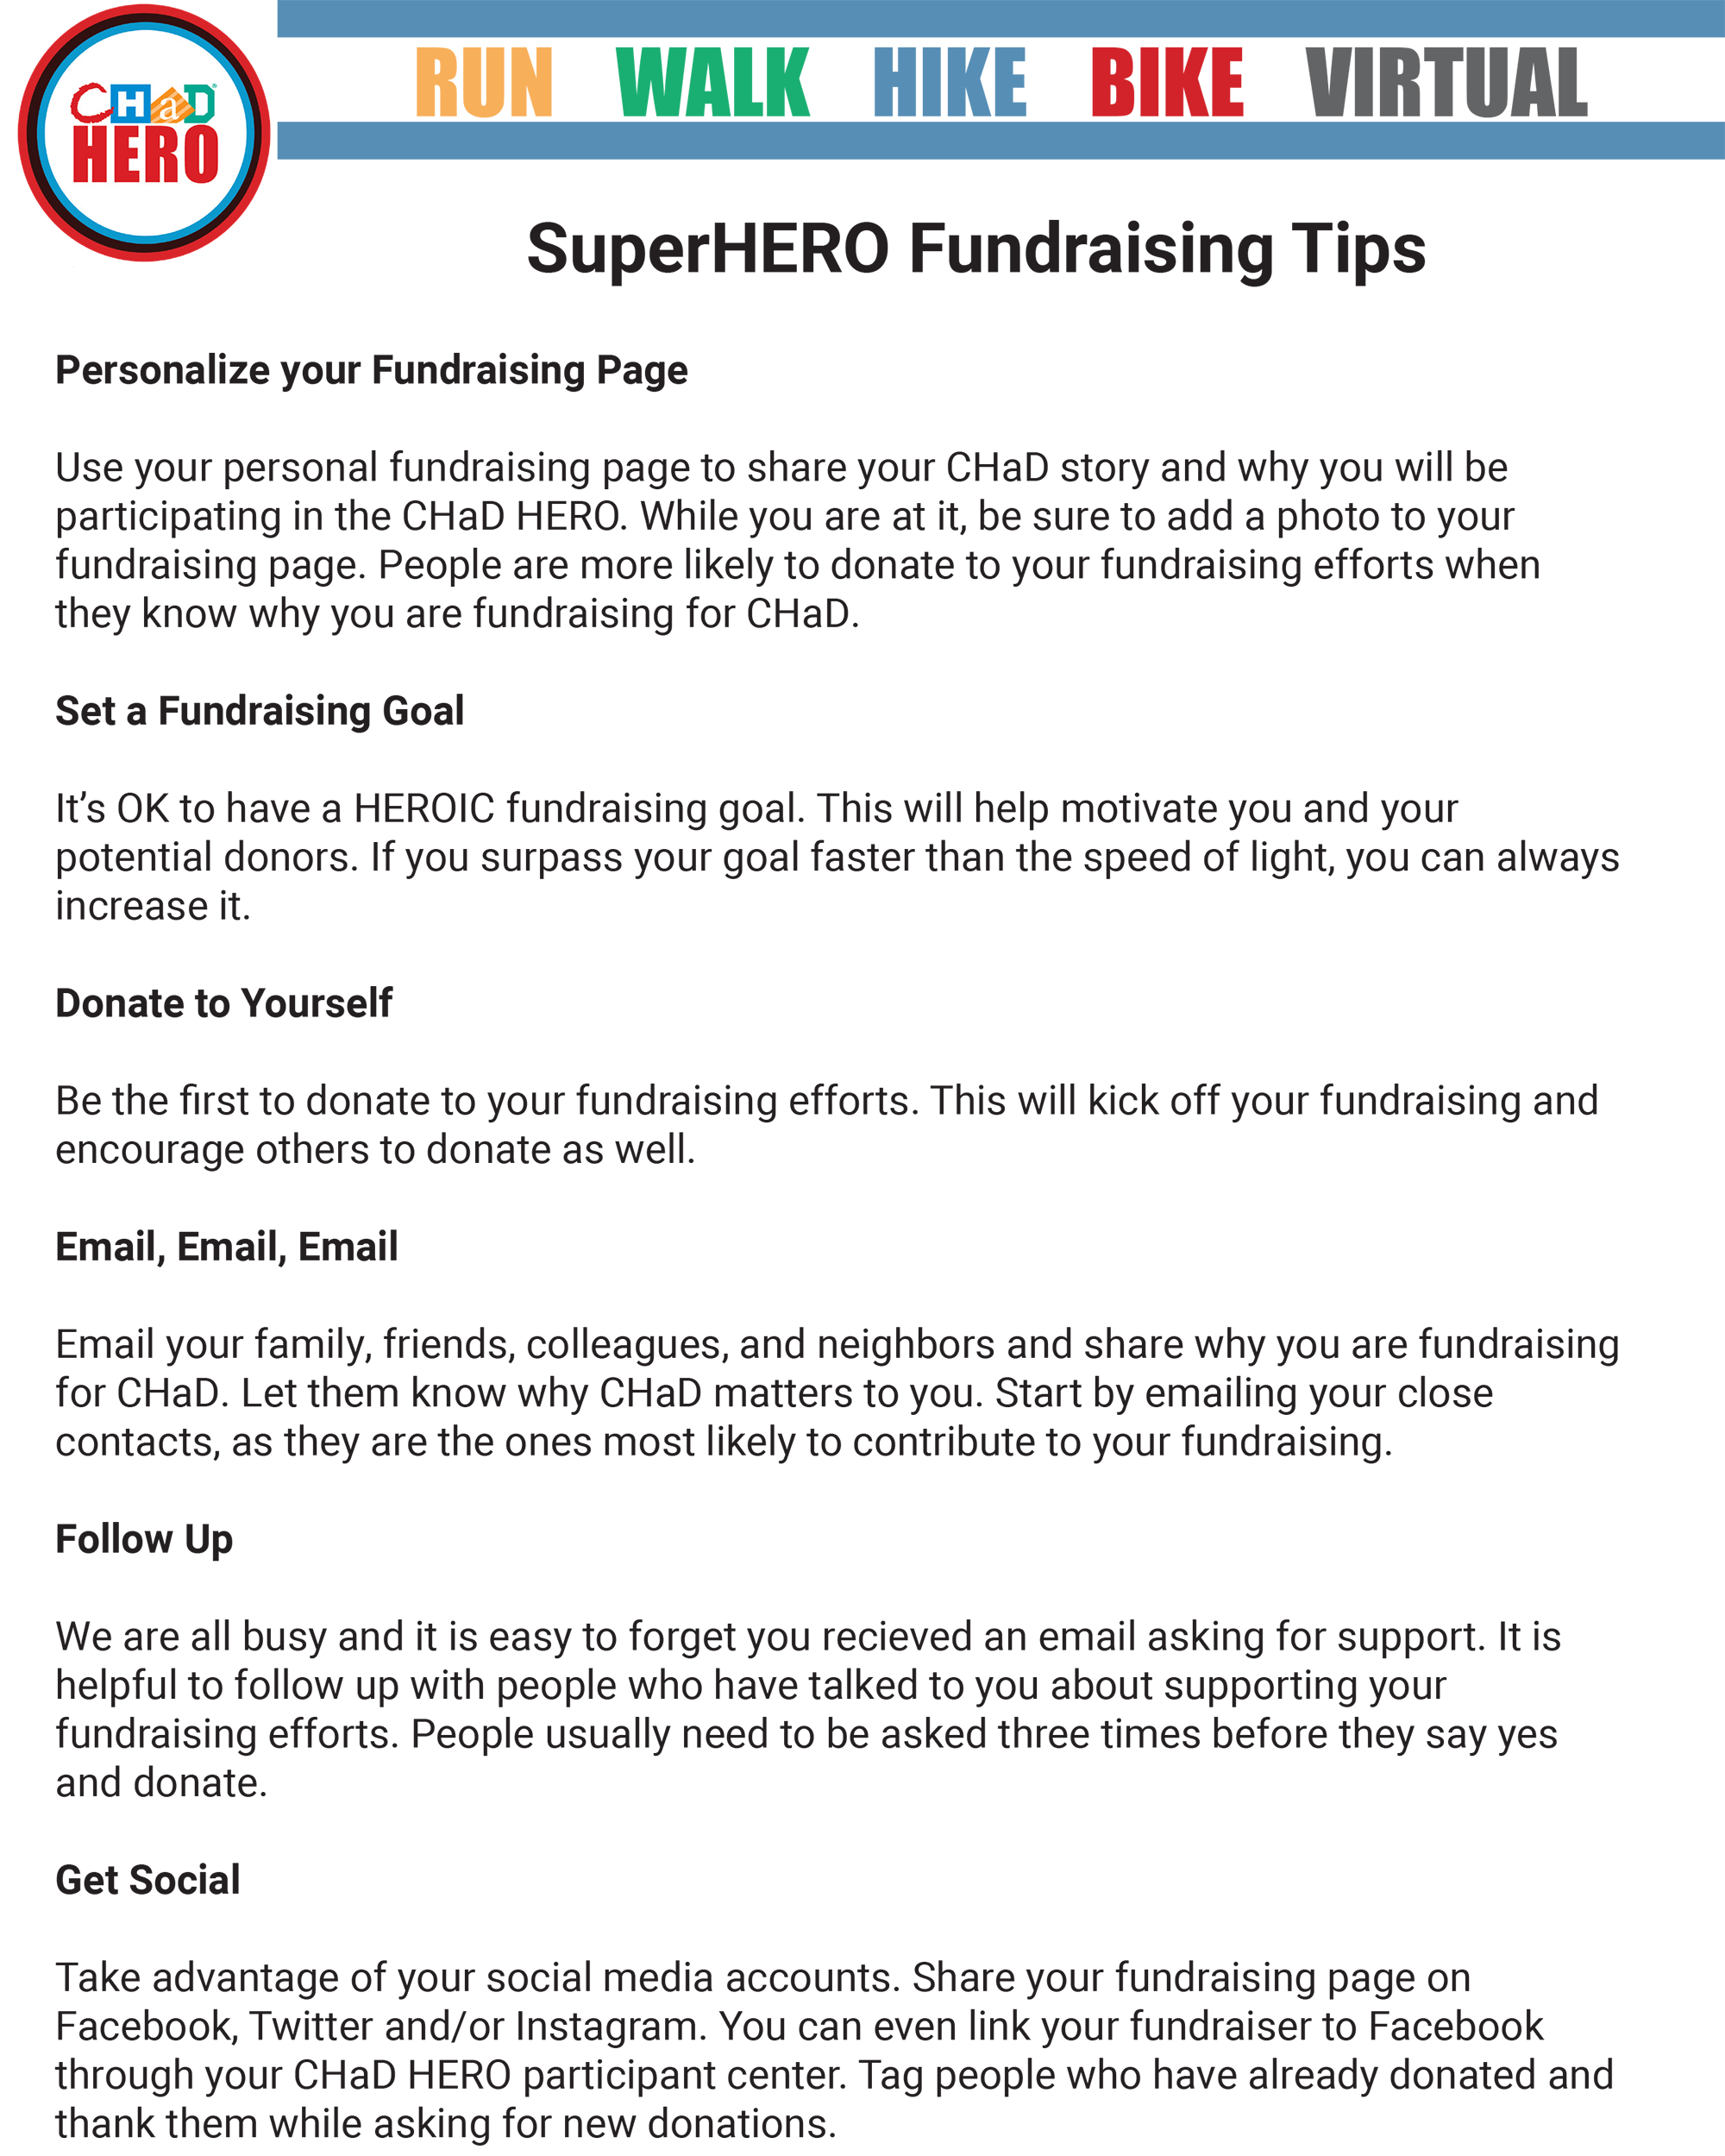 2021 CHaD HERO Fundraising Tips